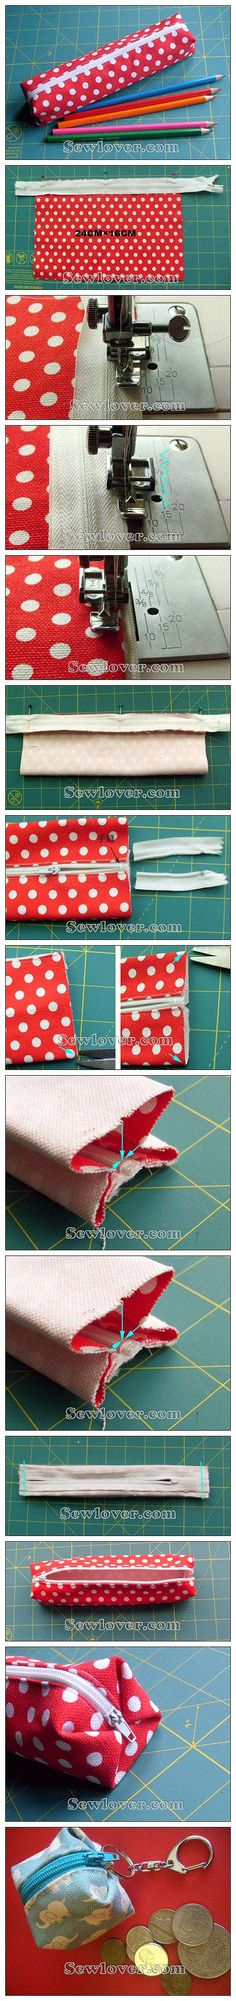 DIY pencil bag or cube coin bag with zipper! very cute! :D